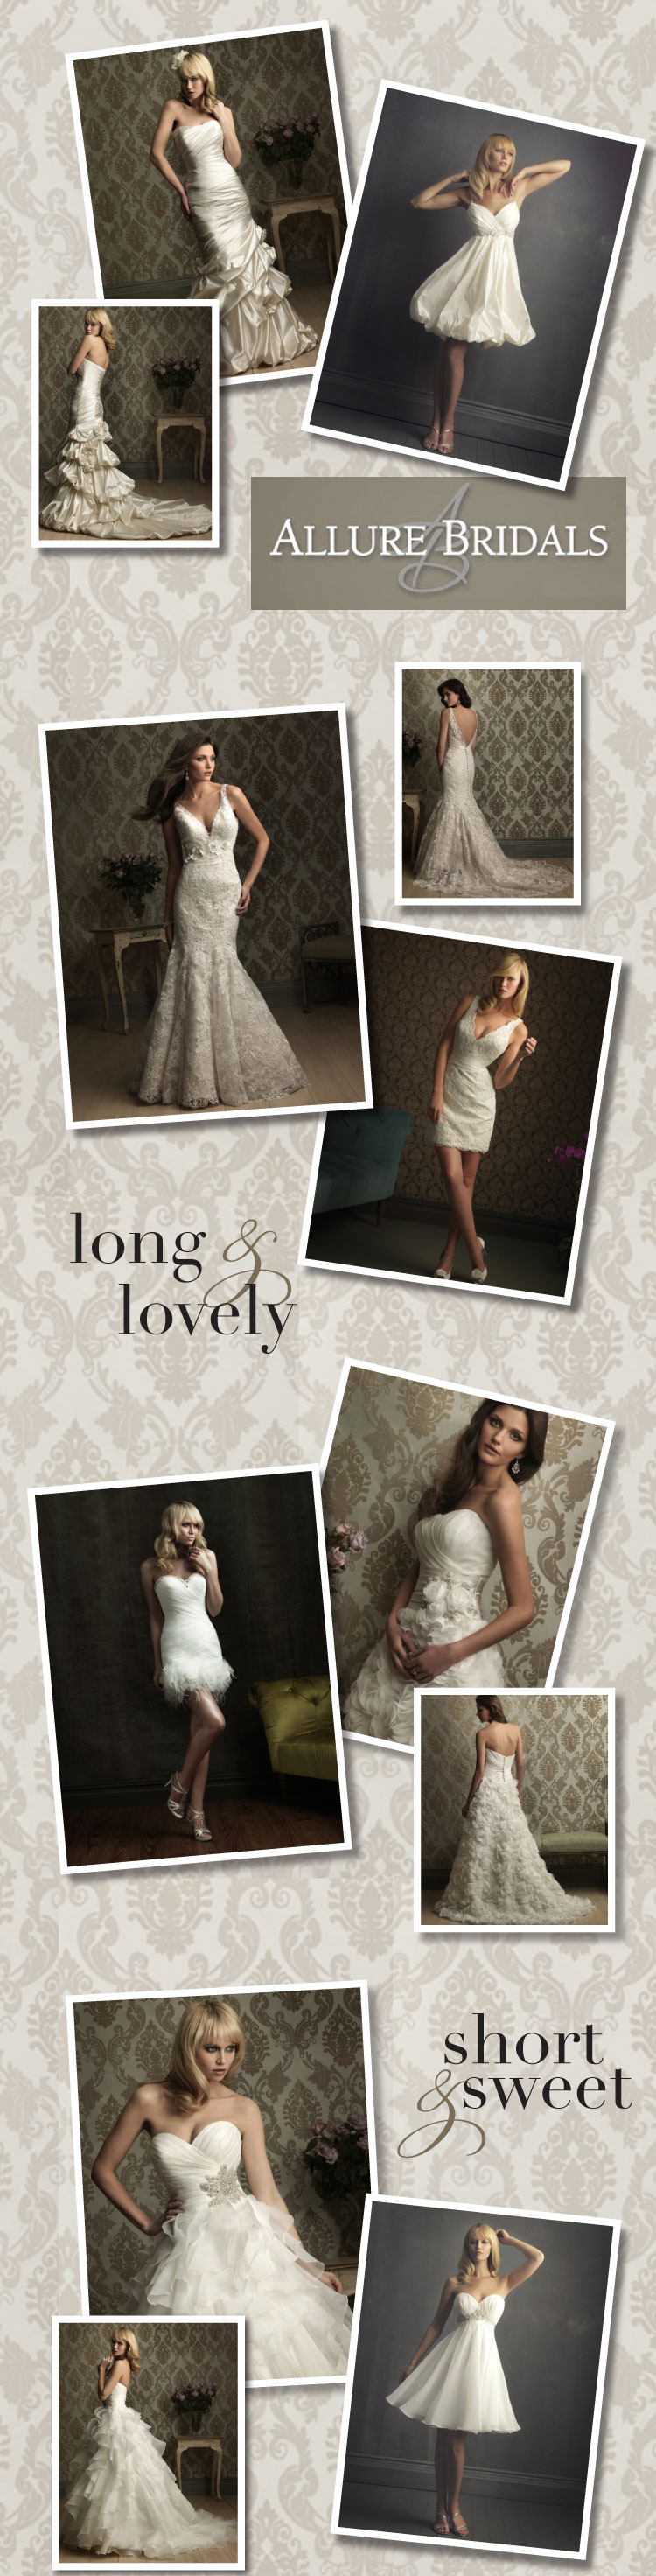 Allure Bridals - Bridal Boutique in Norman, BeLoved Bridal and Moliere Bridal